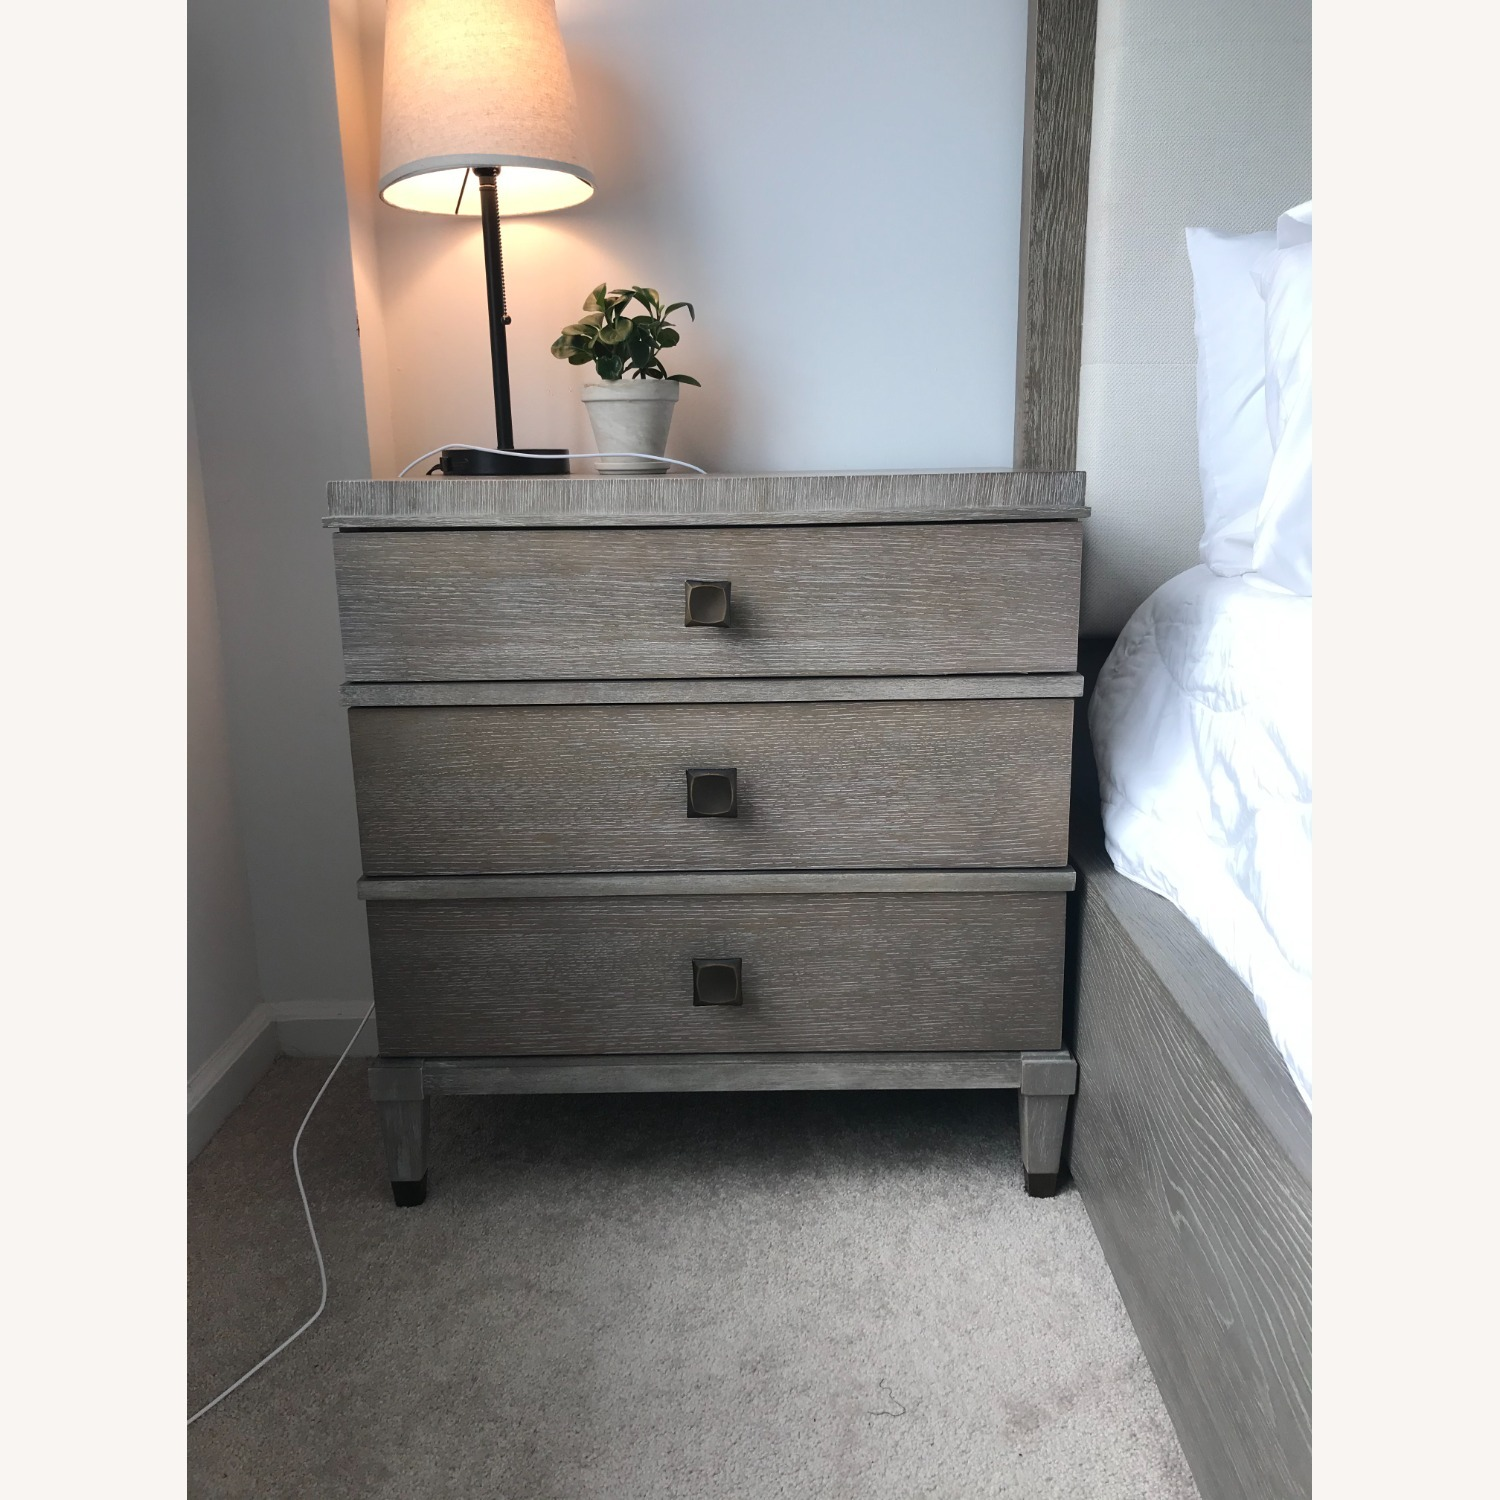 Universal Furniture Nightstand with Outlets - image-2